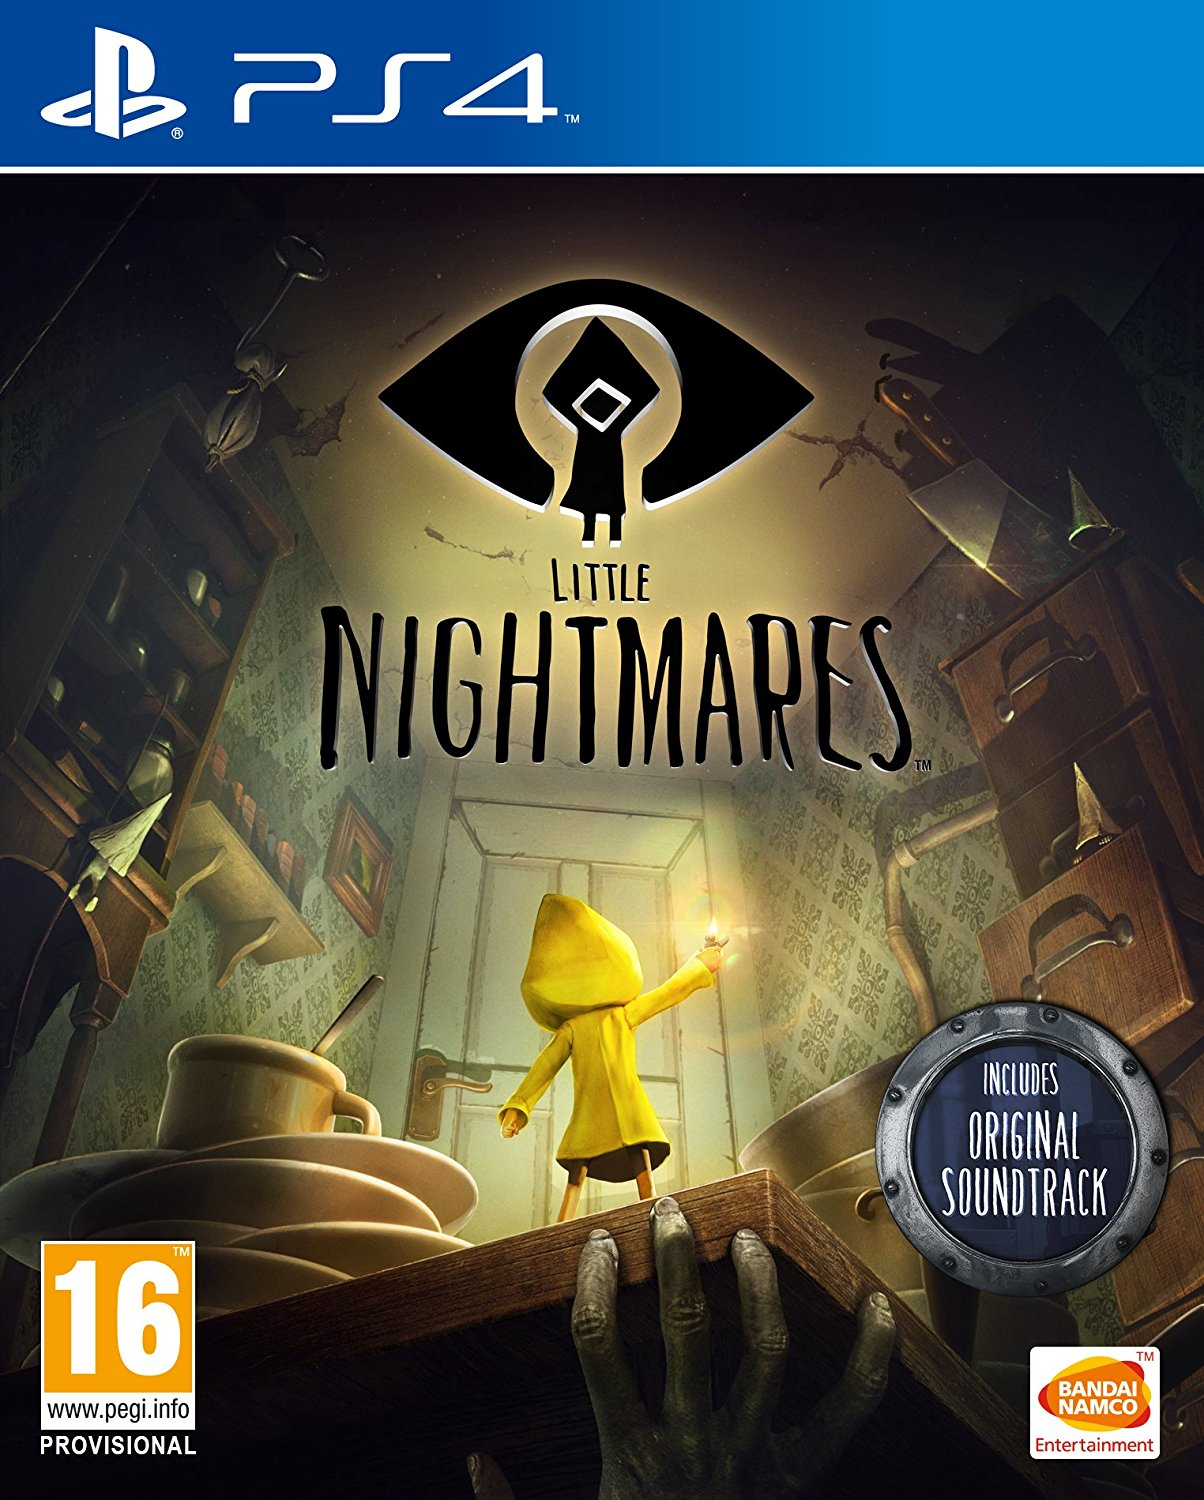 Little Nightmares Hits a Milestone: 1 million Copies Sold!